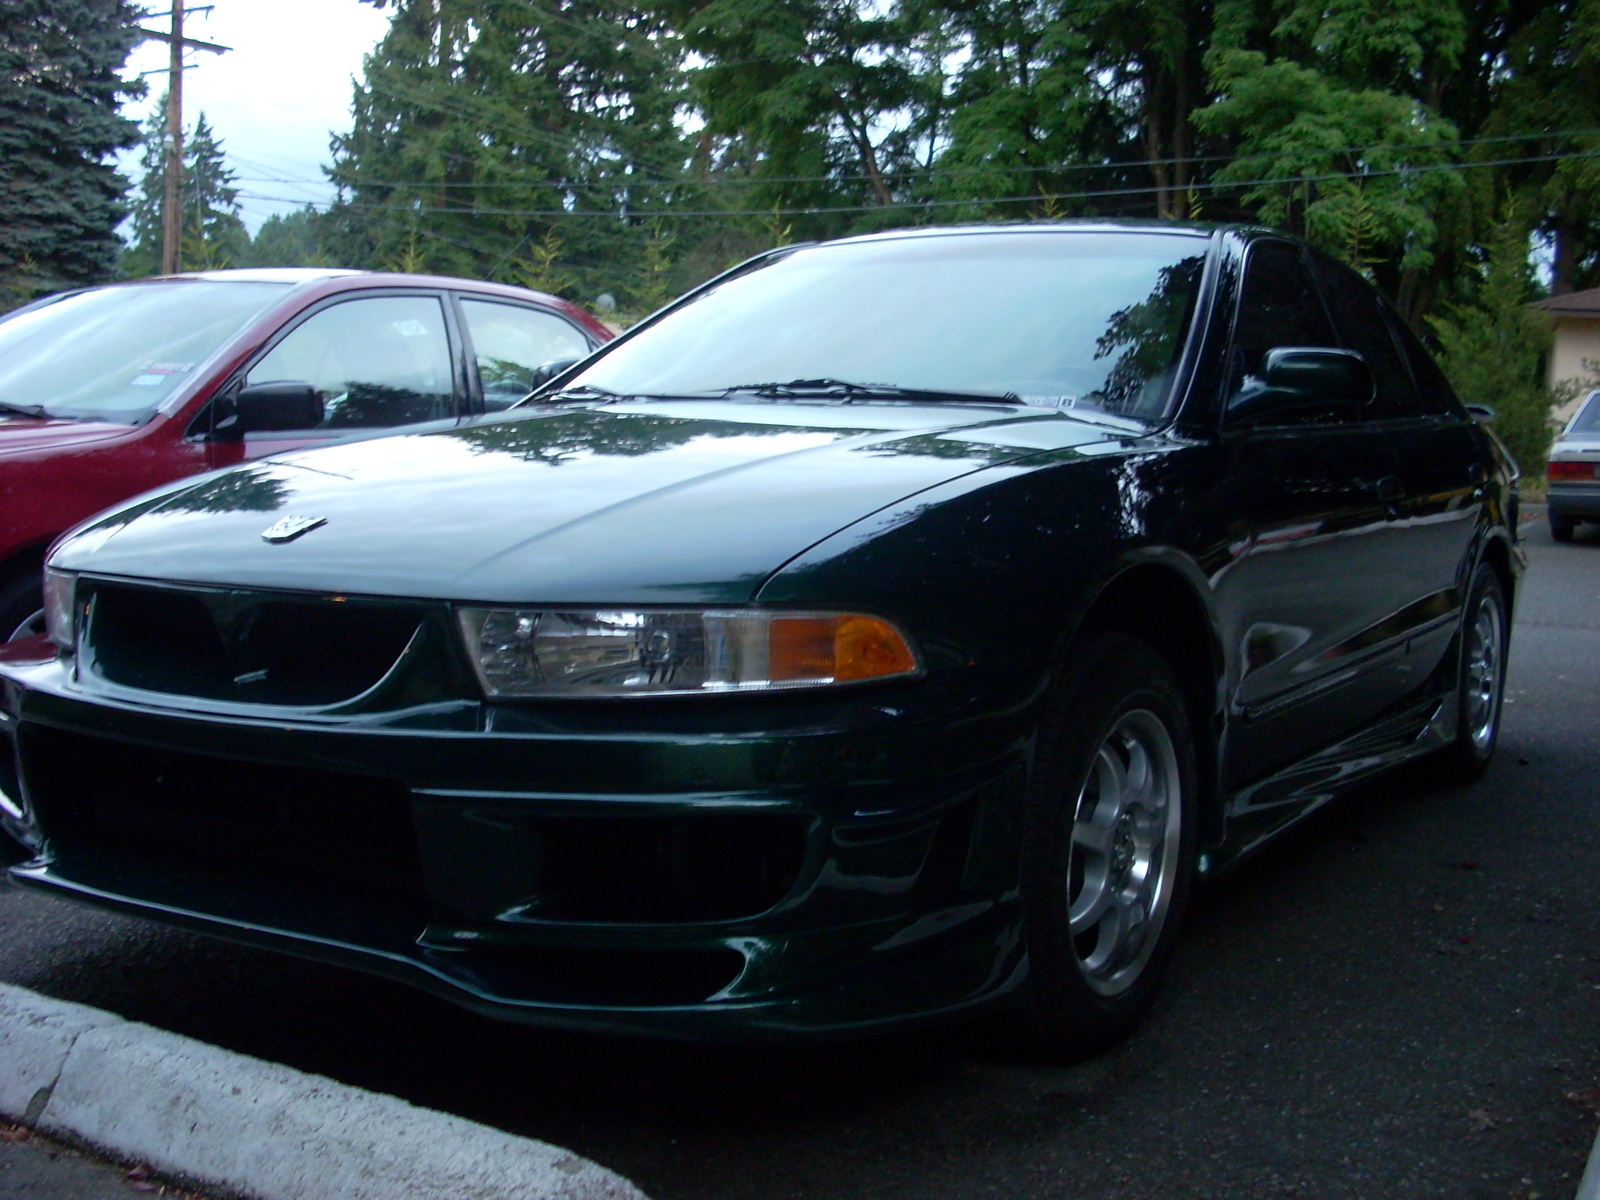 2001 Mitsubishi Galant Es V6 Pictures T8120 pi20739499 in addition Kawasaki 750 Jet Ski Fuel Filter furthermore 32665 Bst Carbon Fiber Wheels Additional 10 Off together with Htup 1005 1994 Honda Civic Sedan as well Index. on 1994 honda magna rims